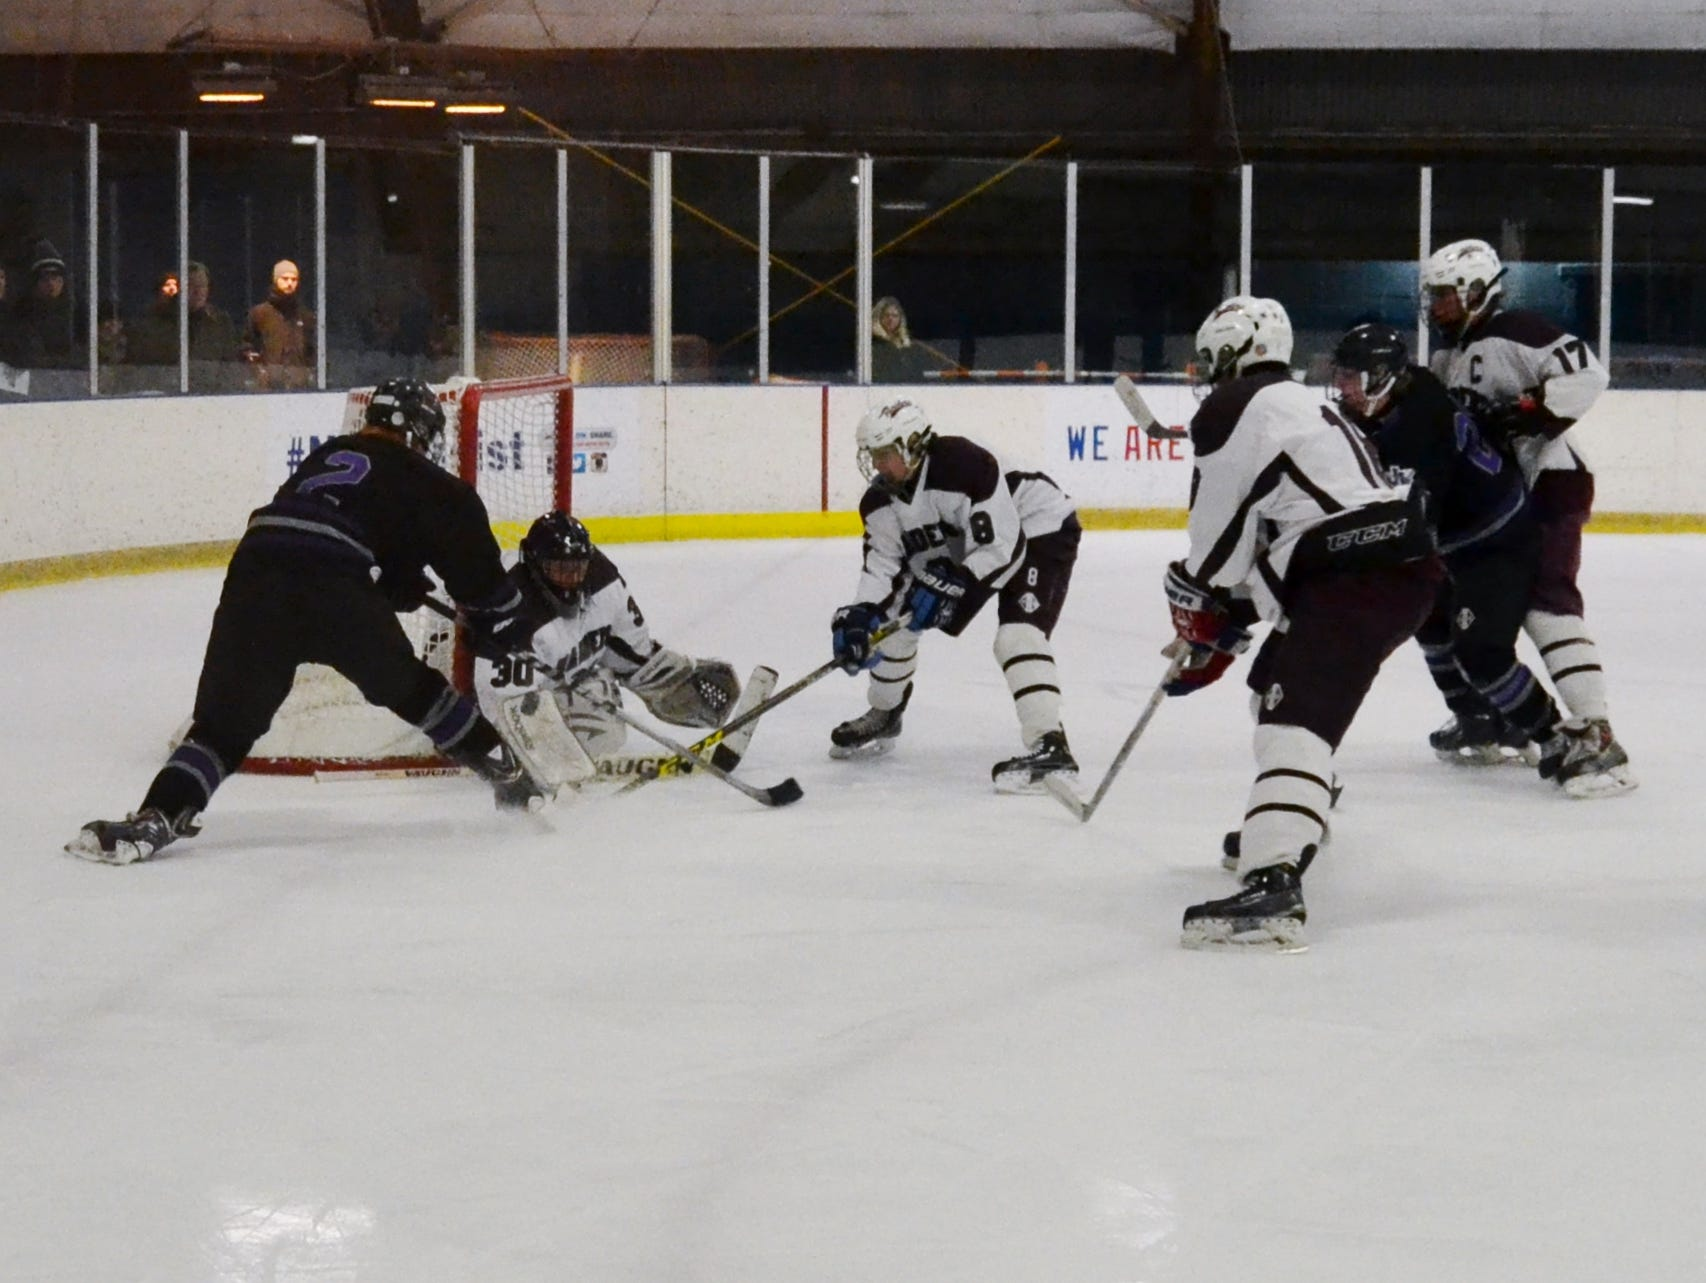 Scarsdale goalie Sam Seltzer prevents Sean Blaney (2) from scoring in the second period Friday at E.J. Murray Skating Center. The Raiders pulled away in the third period and posted a 7-4 win.